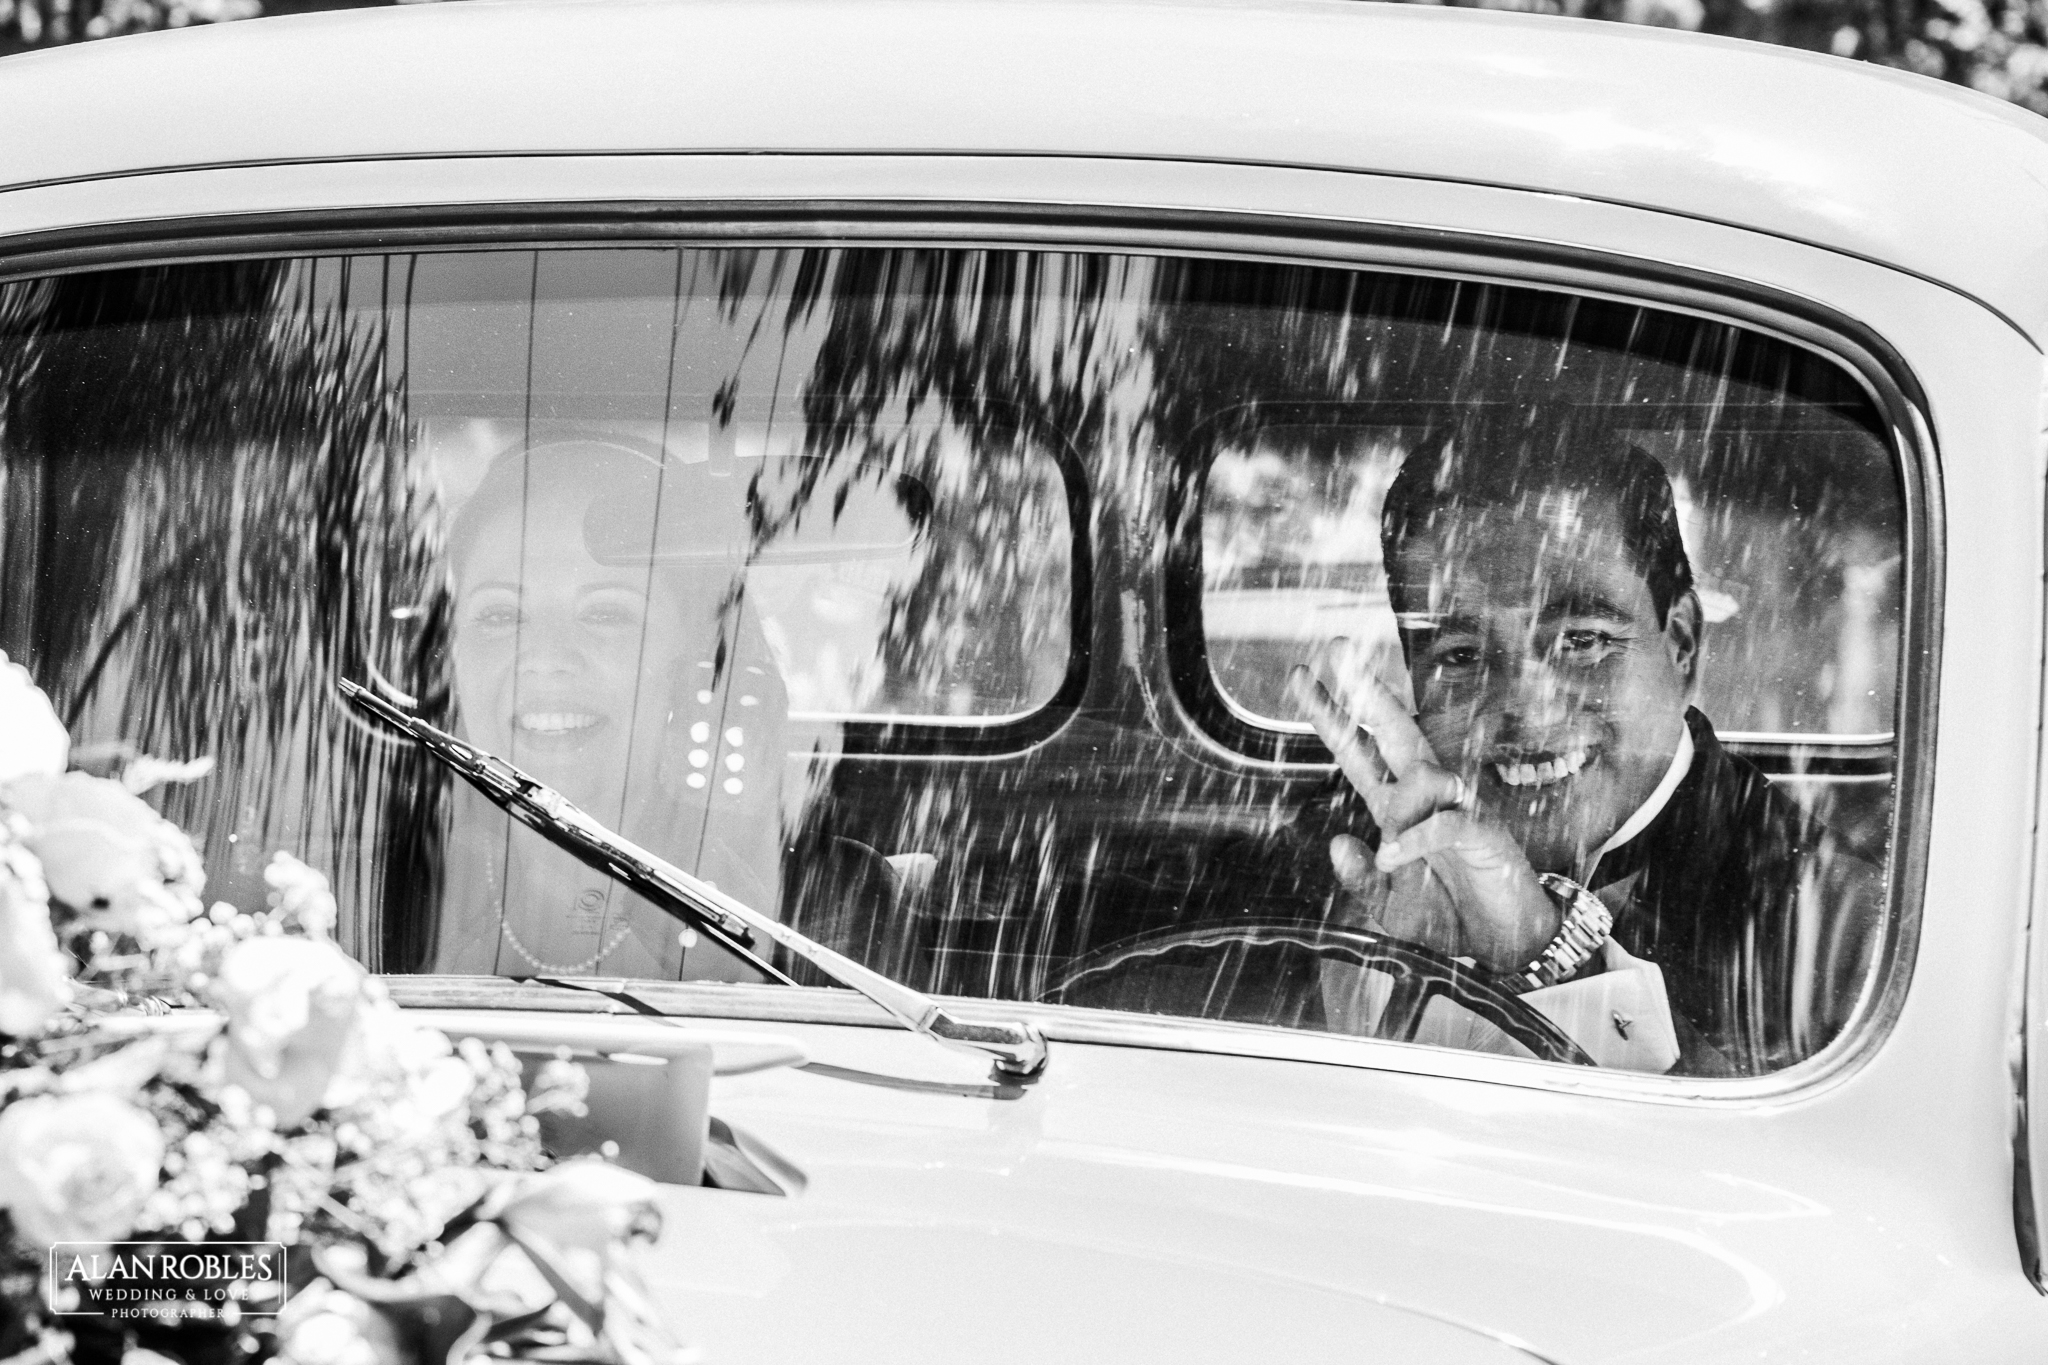 Wedding Moments. Fotografia documental de bodas. Novios en automovil. Alan RObles Fotografo de Bodas en Guadalajara.